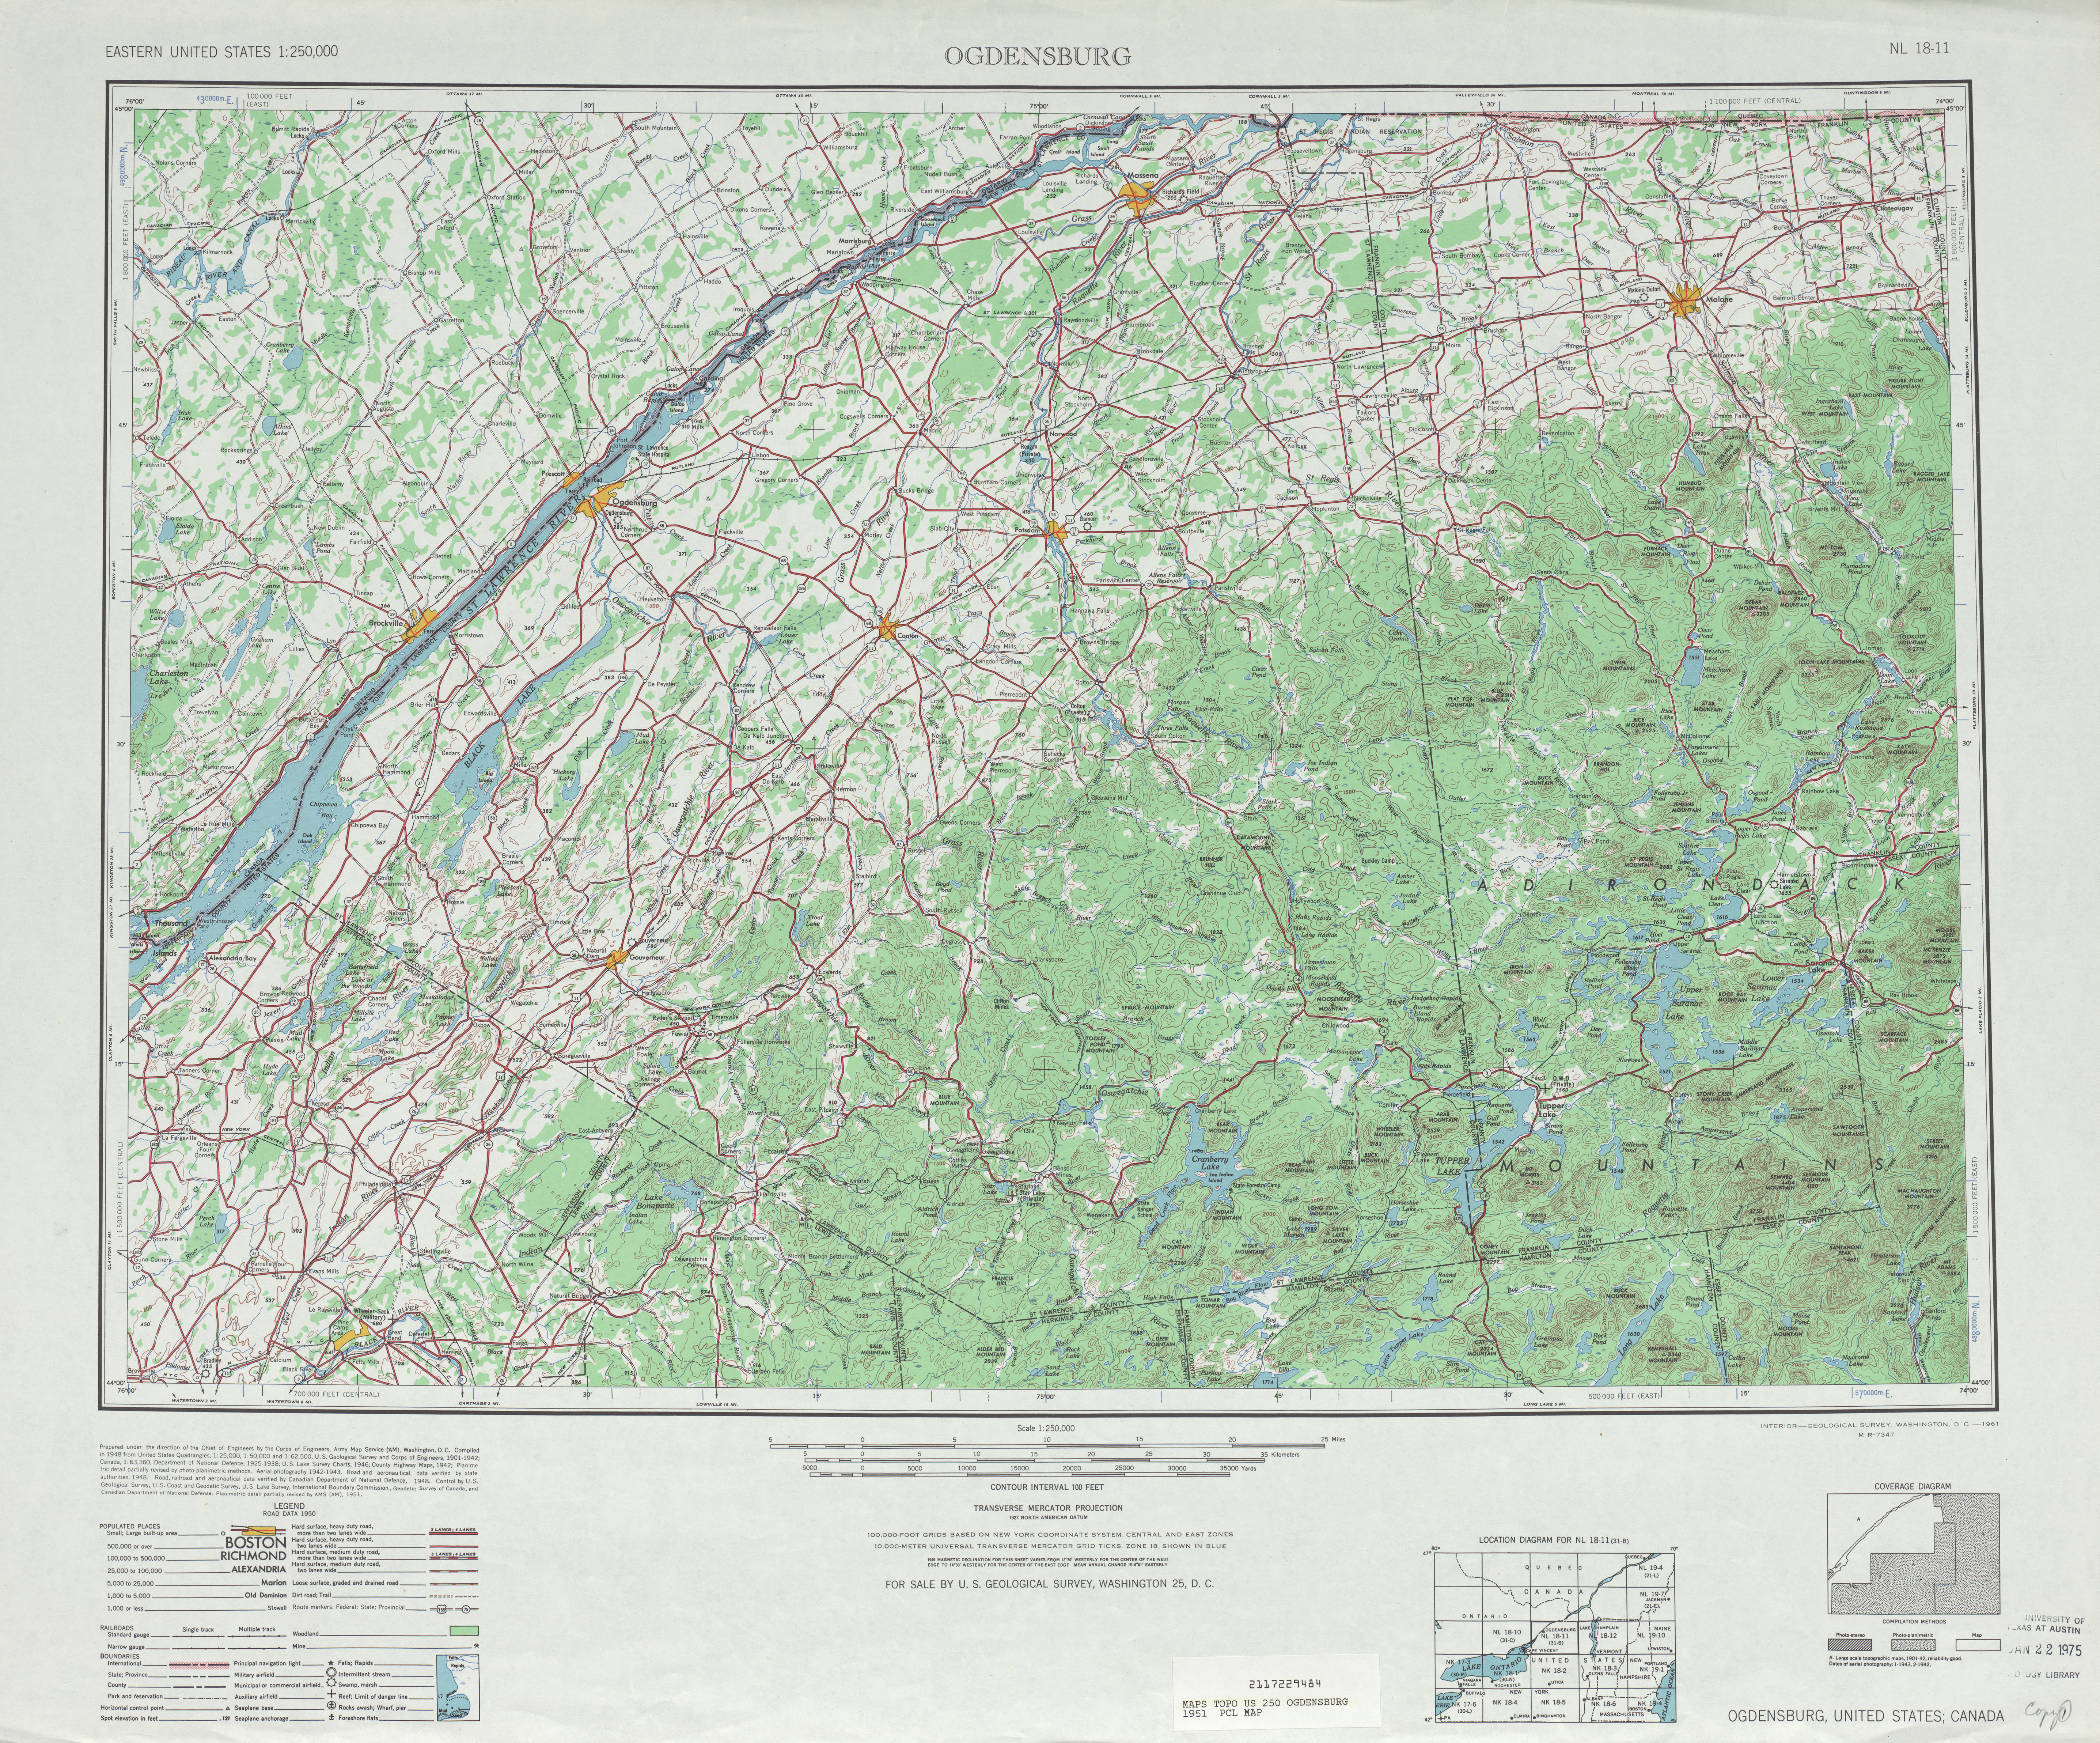 Ogdensburg Topographic Map Sheet, United States 1951